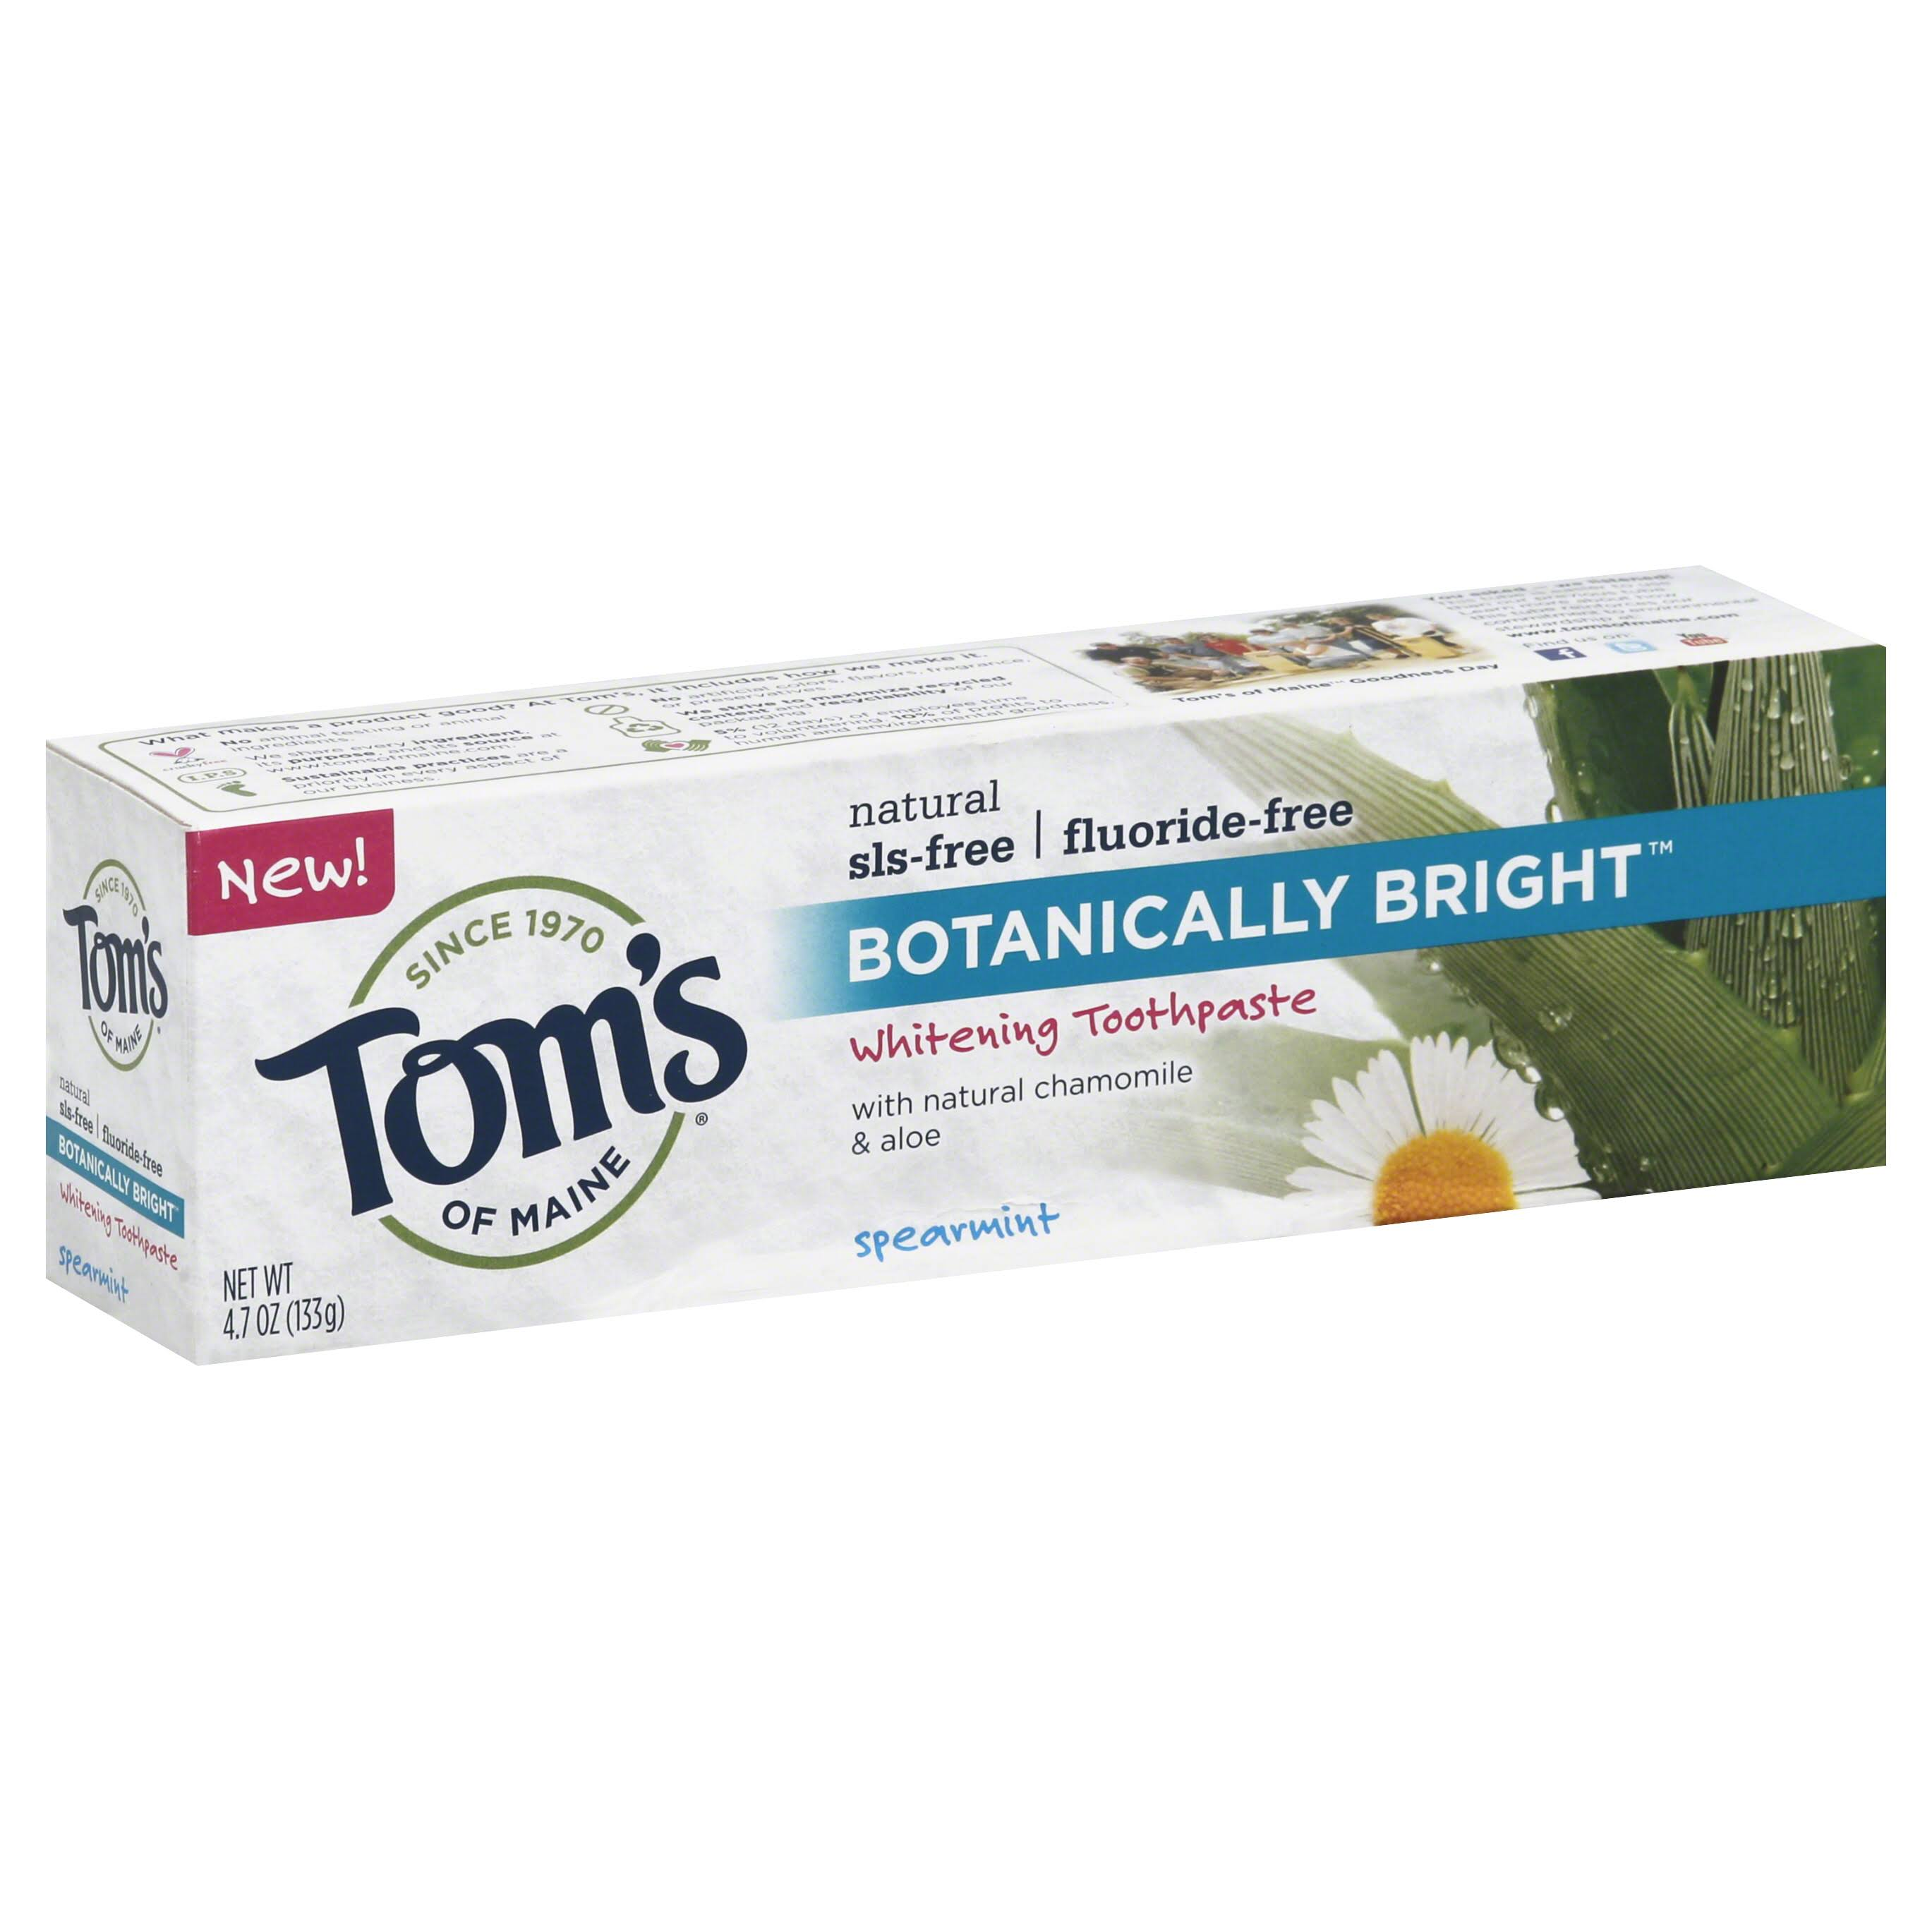 Tom's Of Maine Botanically Bright Whitening Toothpaste - Spearmint